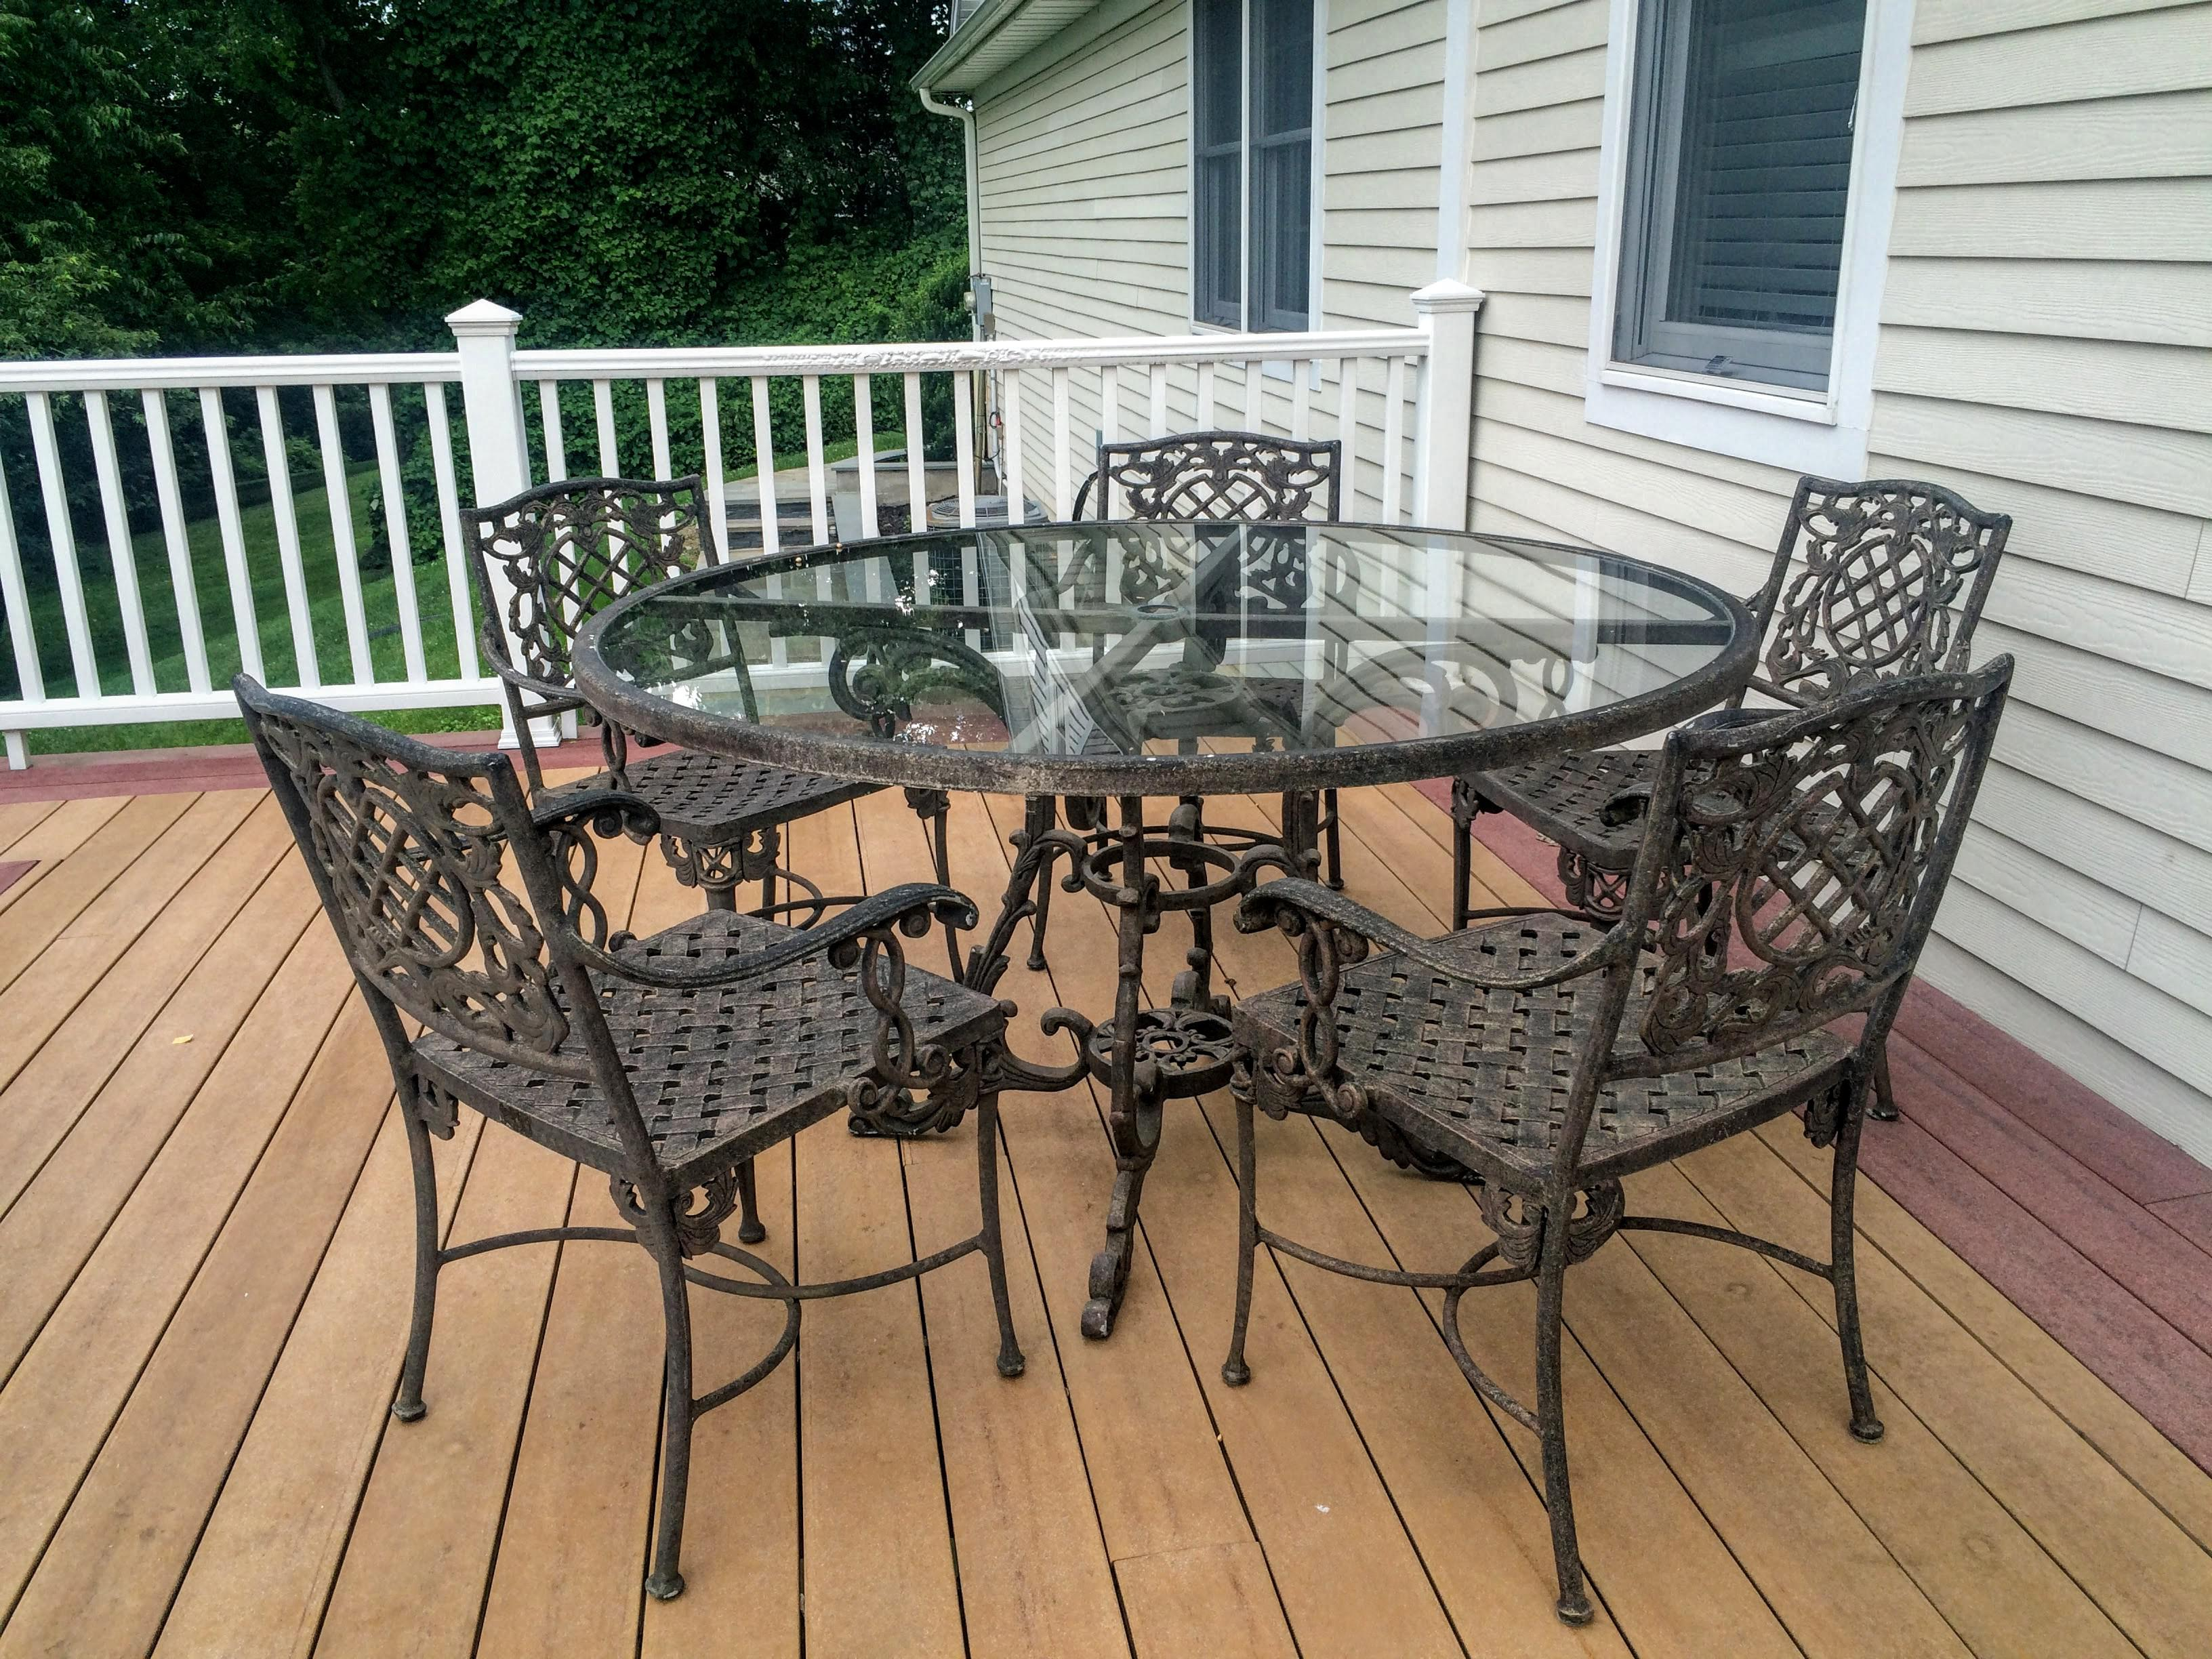 cast classics outdoor table arm chairs set of 6 chairish rh chairish com cast iron classics outdoor furniture Cast Classics Landgrave Replacement Cushions